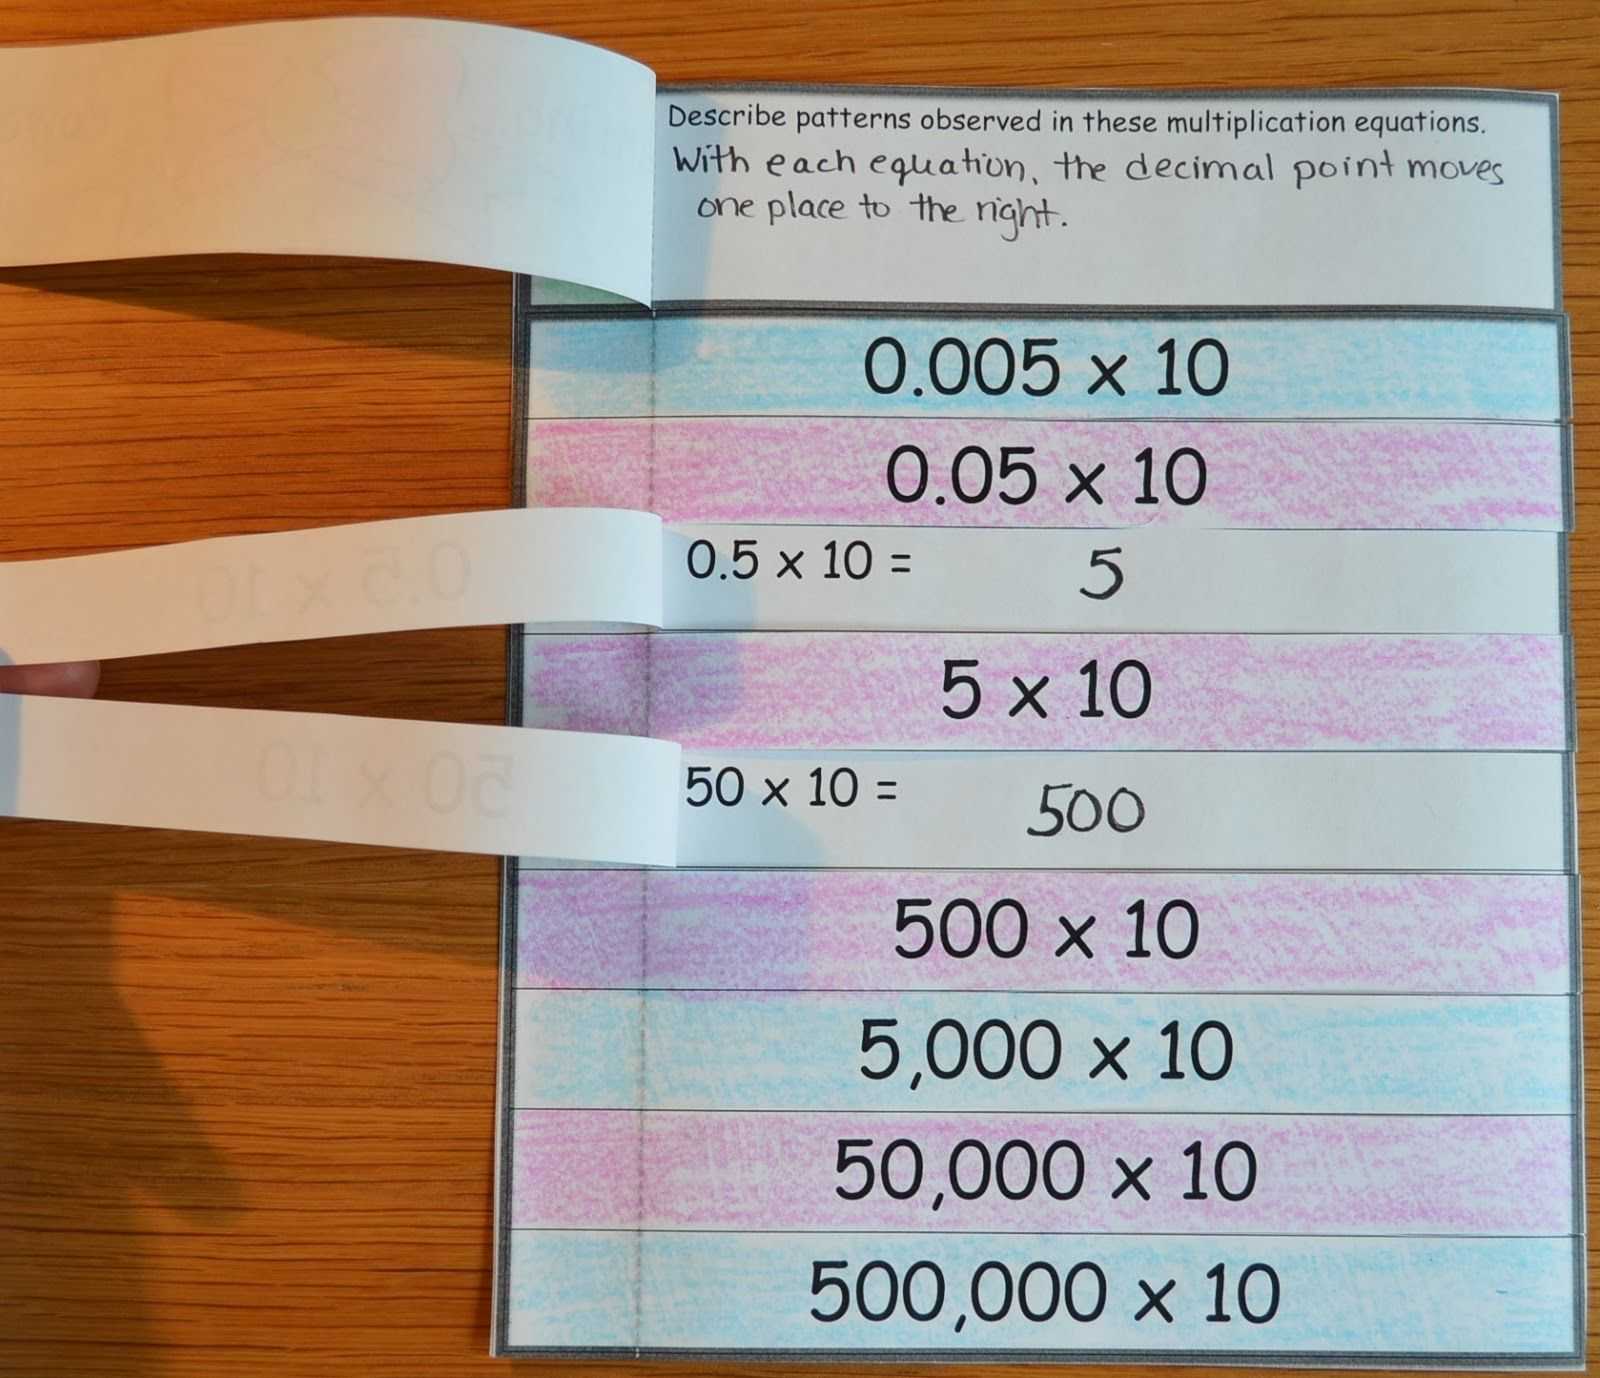 small resolution of powers of 10 flap books use to investigate what happens when a number is either multiplied or divided by 10 again and again place in math notebook if